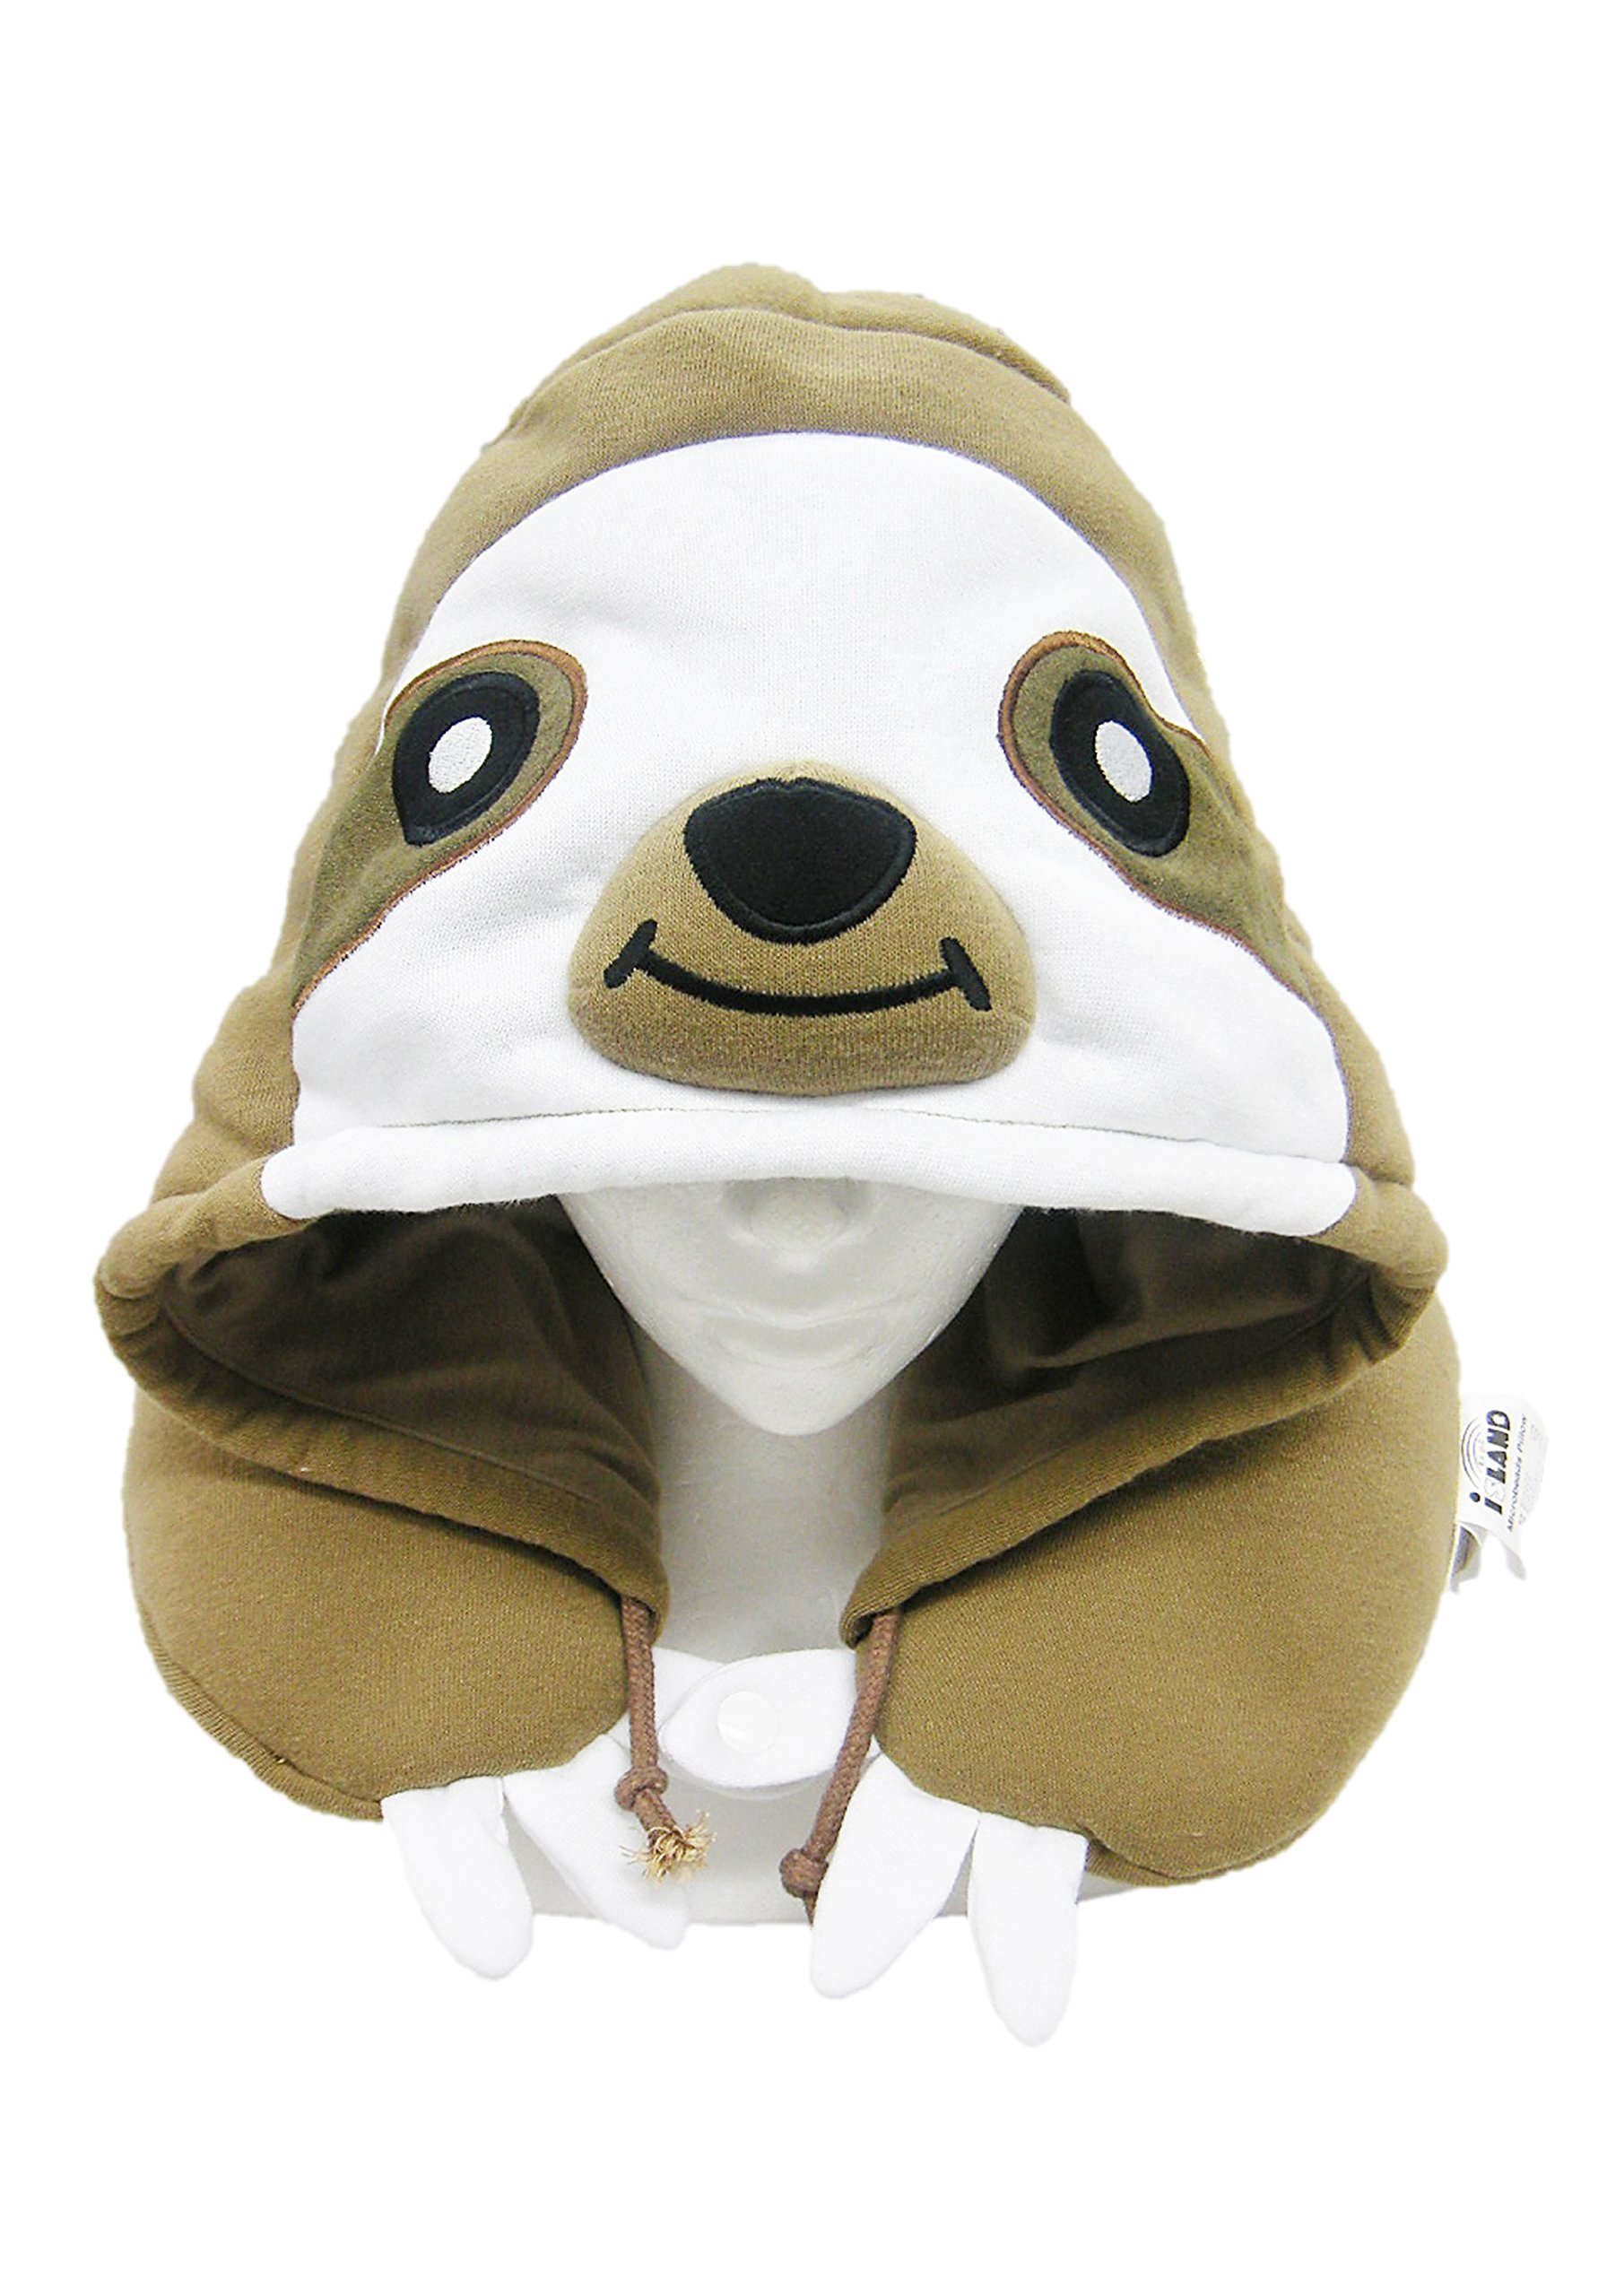 SAZAC Animal Neck Support Pillow - Soft, Cozy Travel Cushion with Adjustable Toggle - Attached Hood for Warmth and Privacy - Authentic Japanese Kawaii Design - Premium Quality (Sloth)